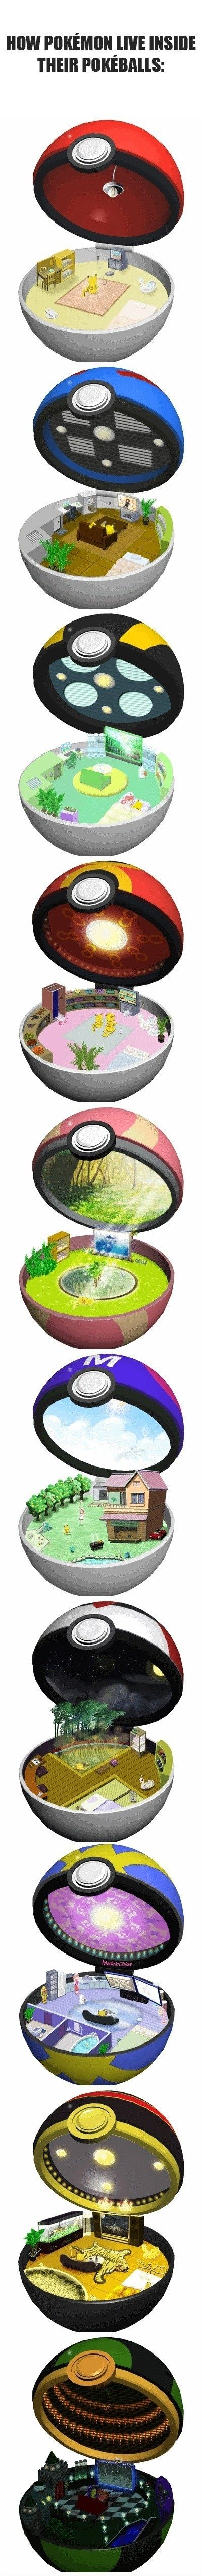 the inside of pokeballs this is amazing